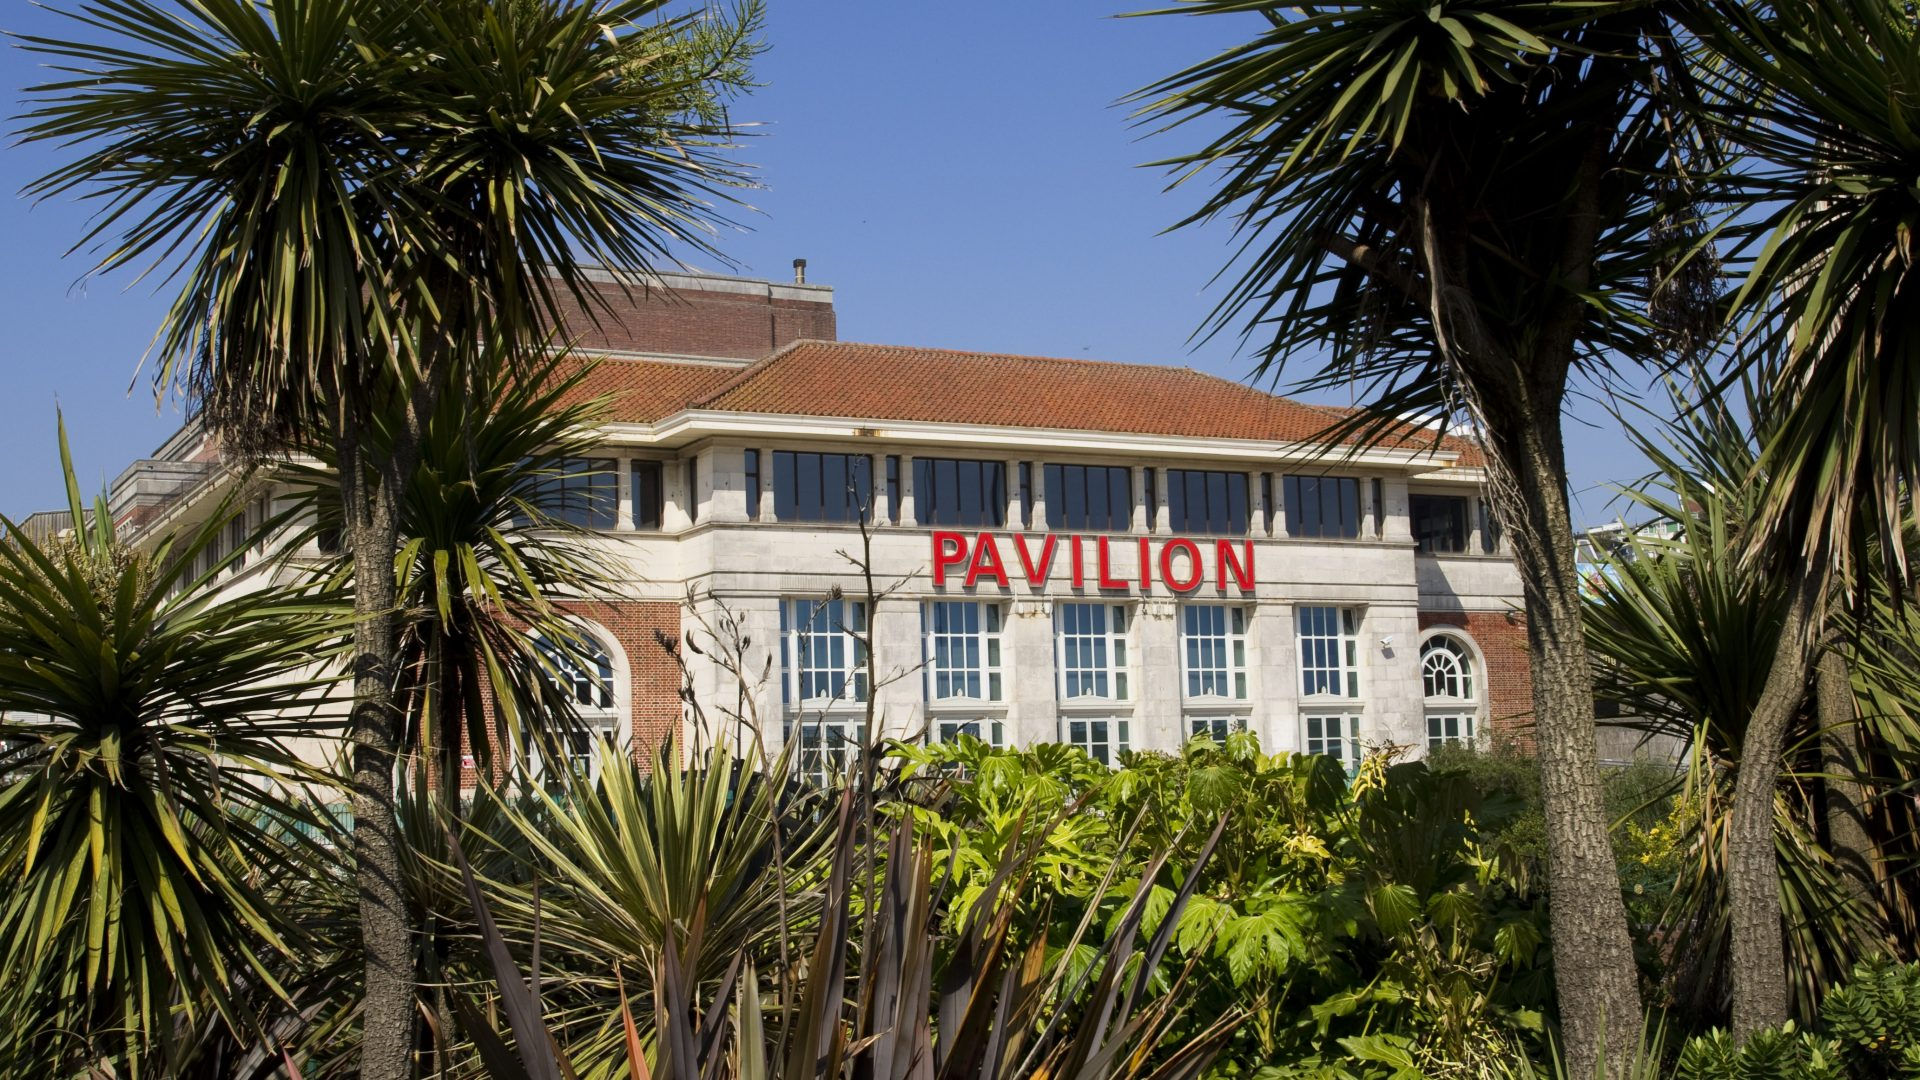 A photo of Bournemouth Pavilion exterior taken from the Lower Gardens